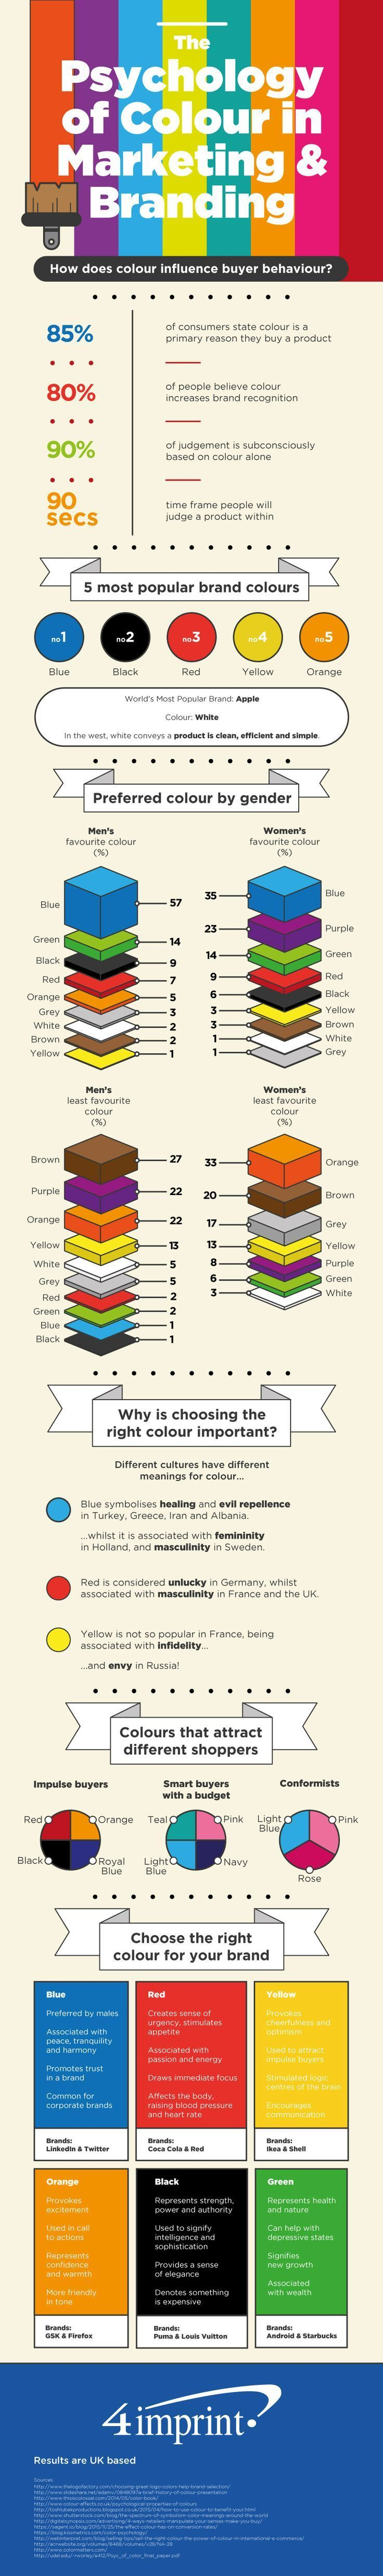 Psychology of #colour infographic                                               ...